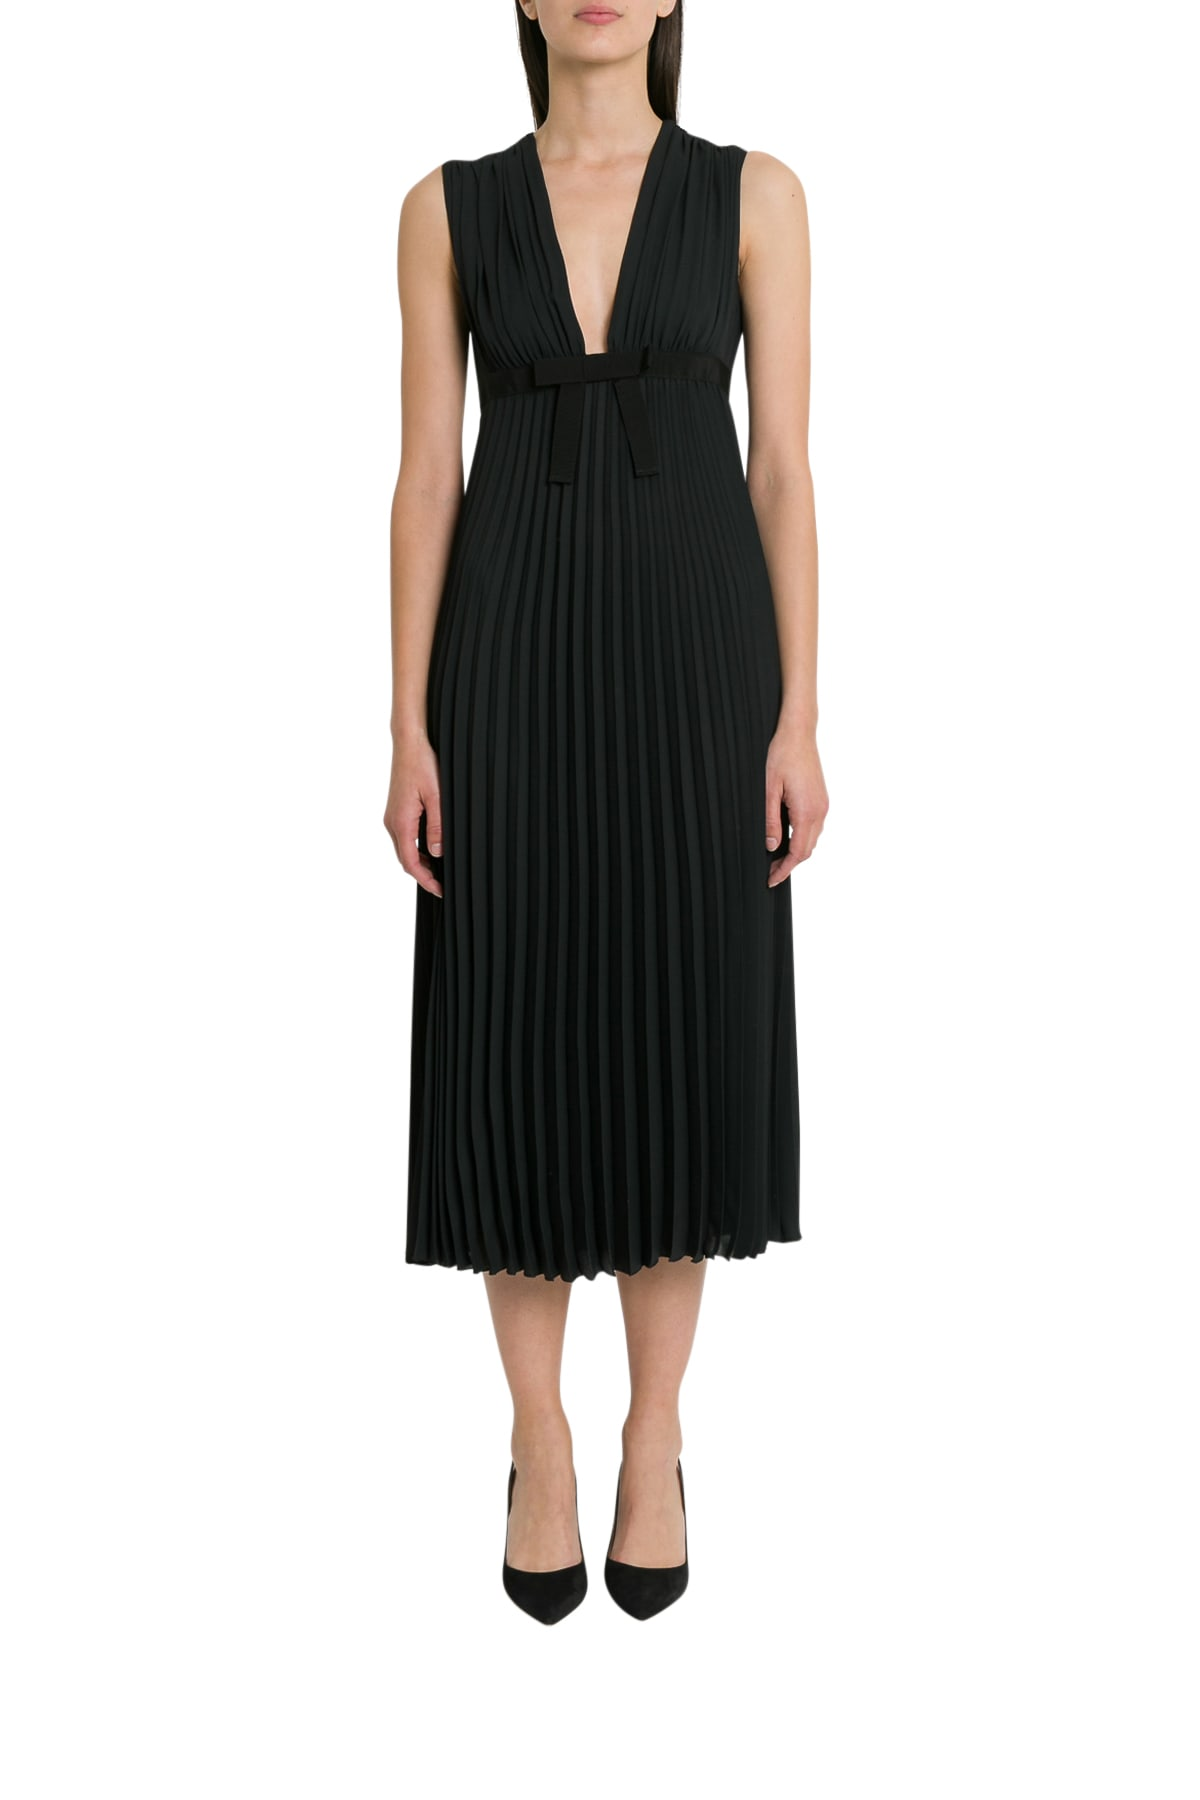 Buy RED Valentino Empire Waist Maxi Dress online, shop RED Valentino with free shipping